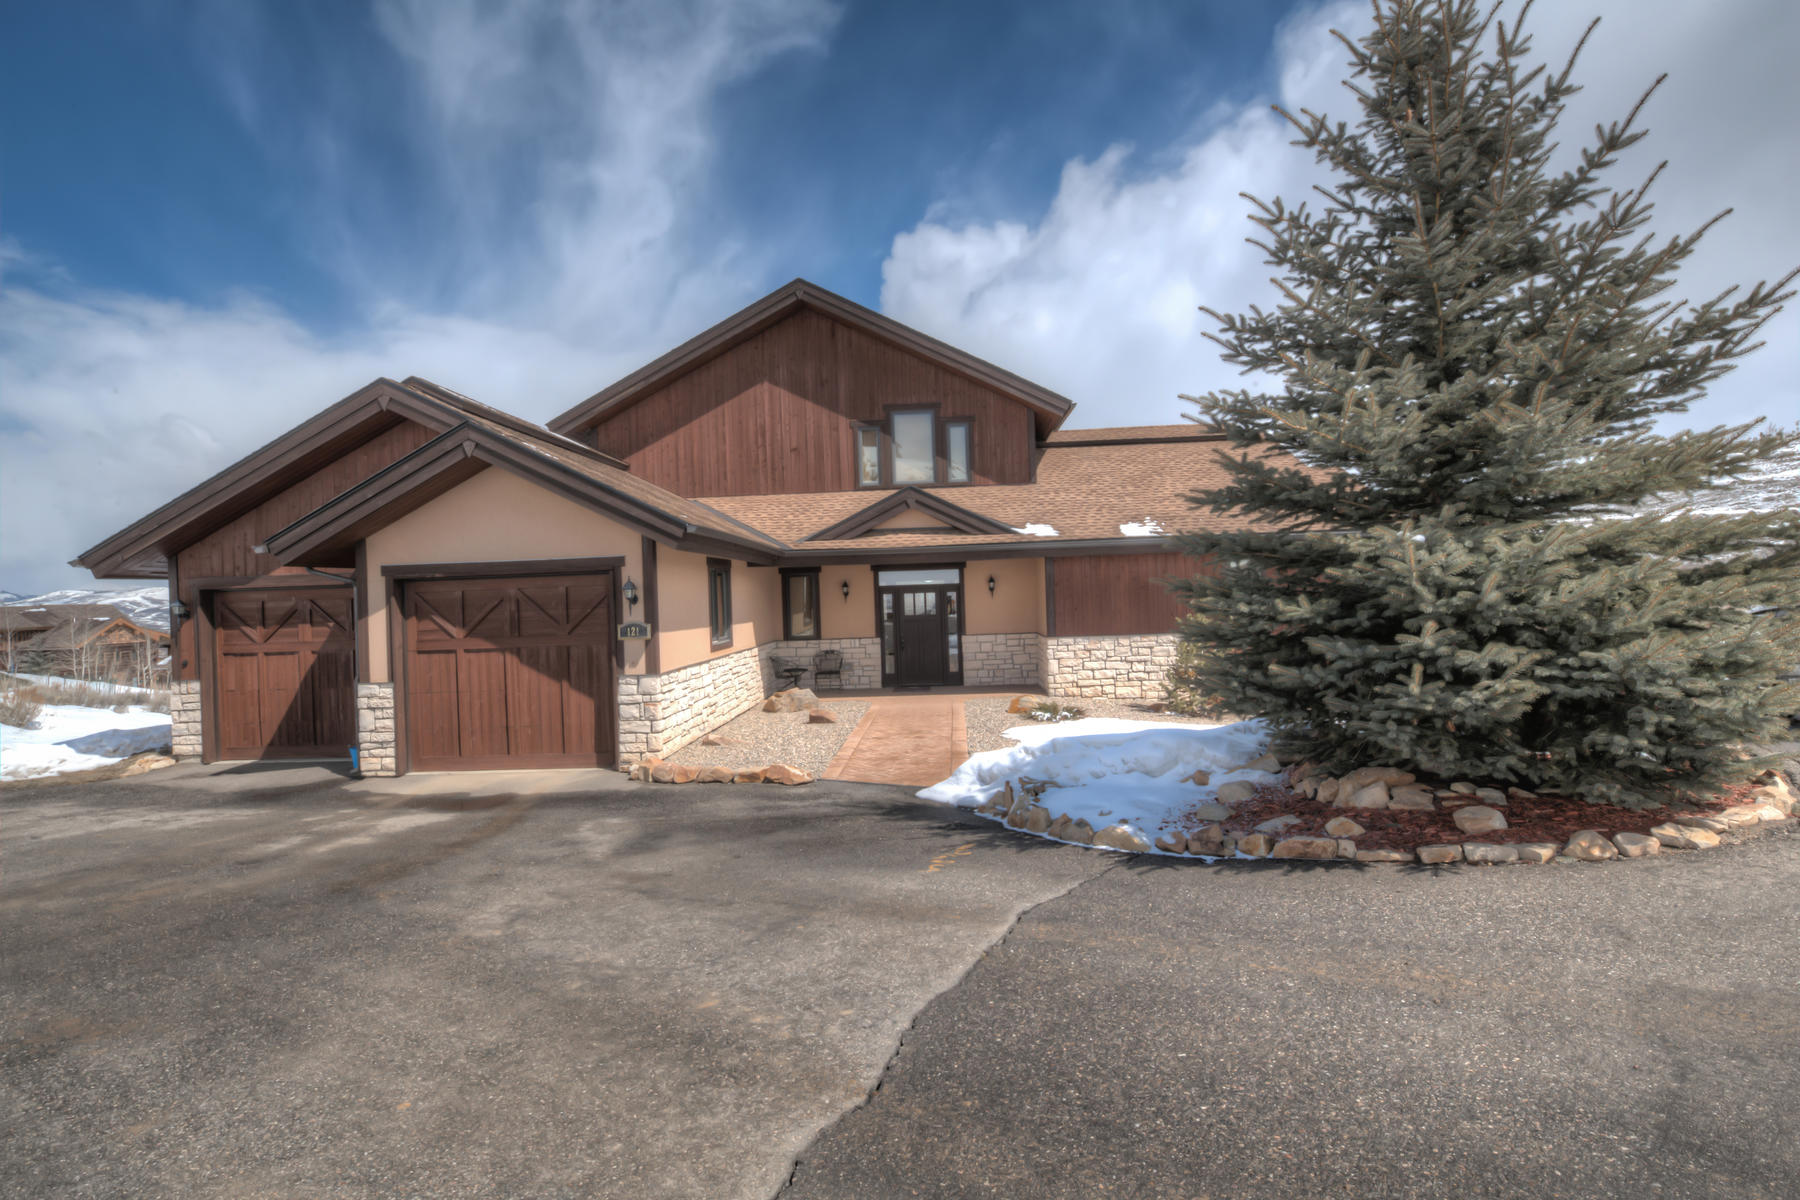 Single Family Homes for Sale at Beautiful Home in Innsbruck-Val Moritz 121 GCR 8950 Granby, Colorado 80446 United States